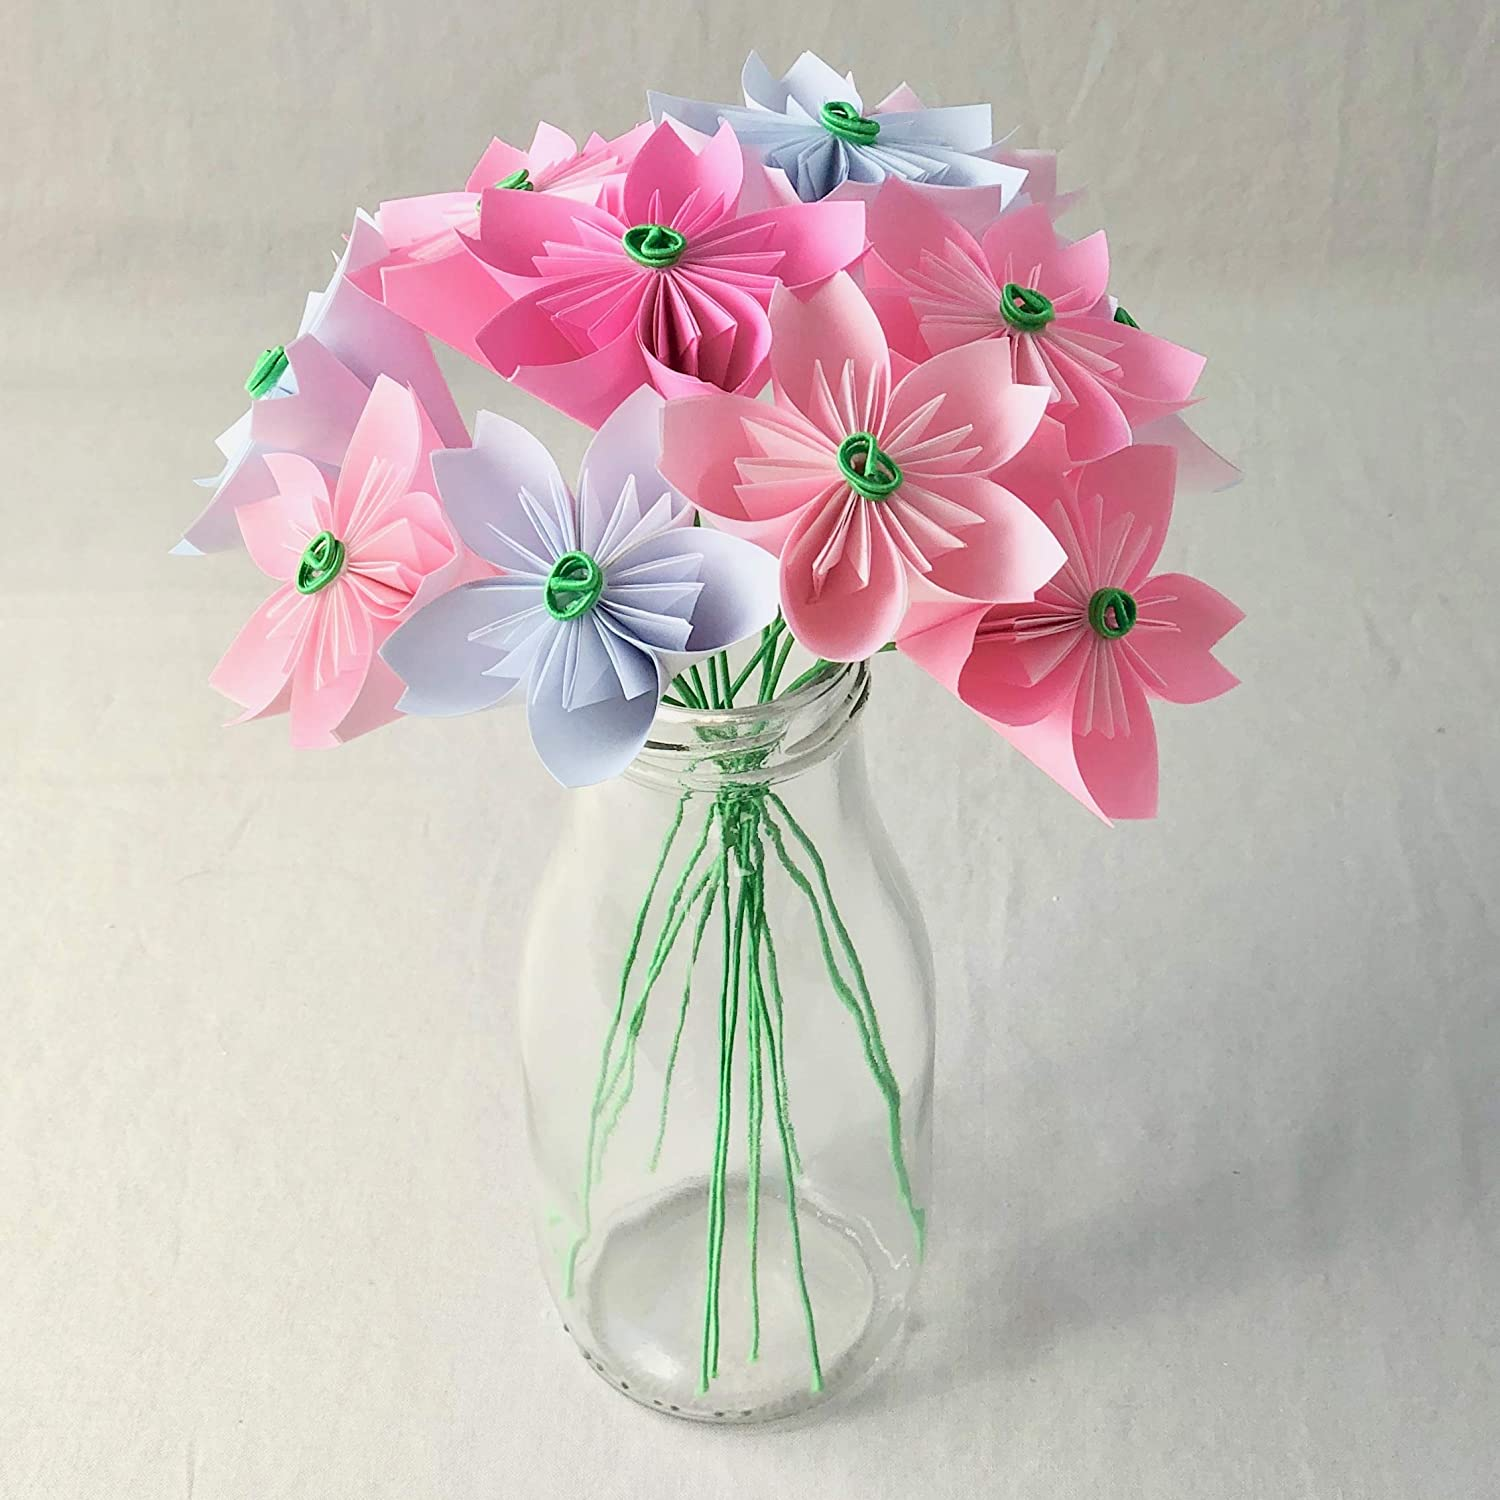 Simple Origami 3D Cherry Blossom Step by Step - Kids Can Make | 1500x1500